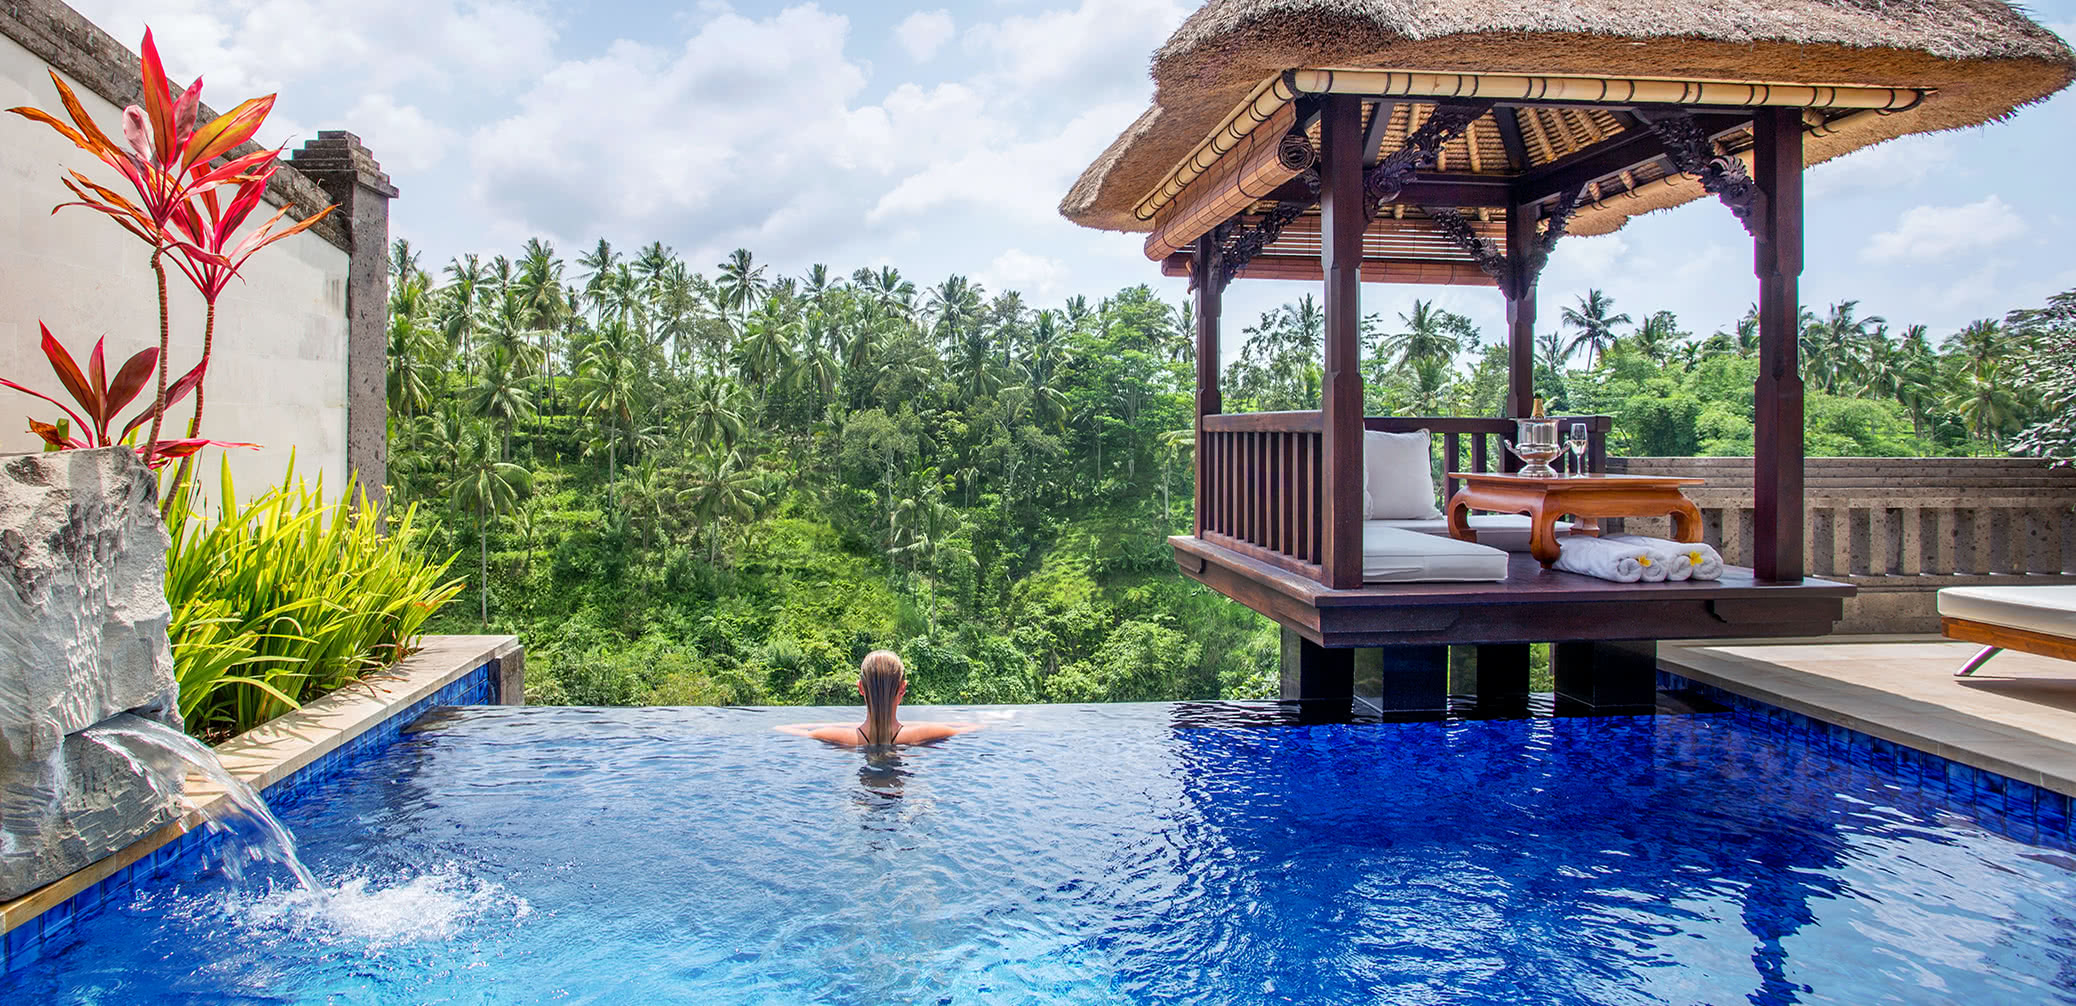 Top 10 Best Hotel Rooms With Private Pools